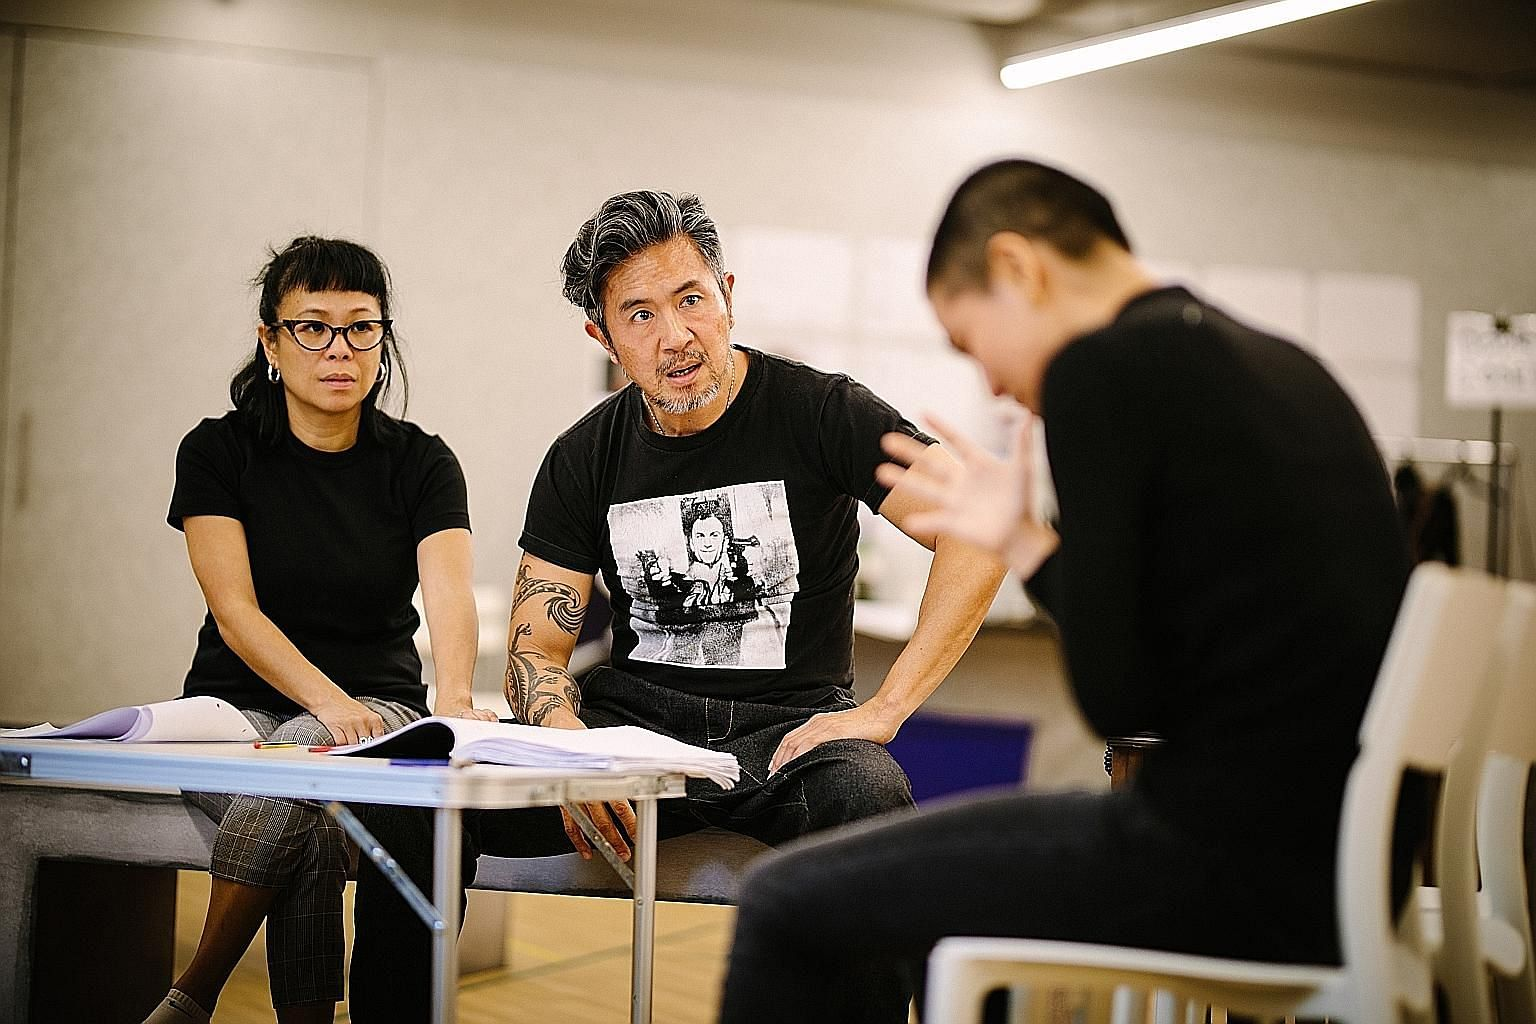 Actor Adrian Pang (centre) during rehearsals with Pam Oei for This Is What Happens To Pretty Girls. The play is fictional but playwright Ken Kwek interviewed more than 100 women, as well as some men accused of inappropriate sexual behaviour, before p